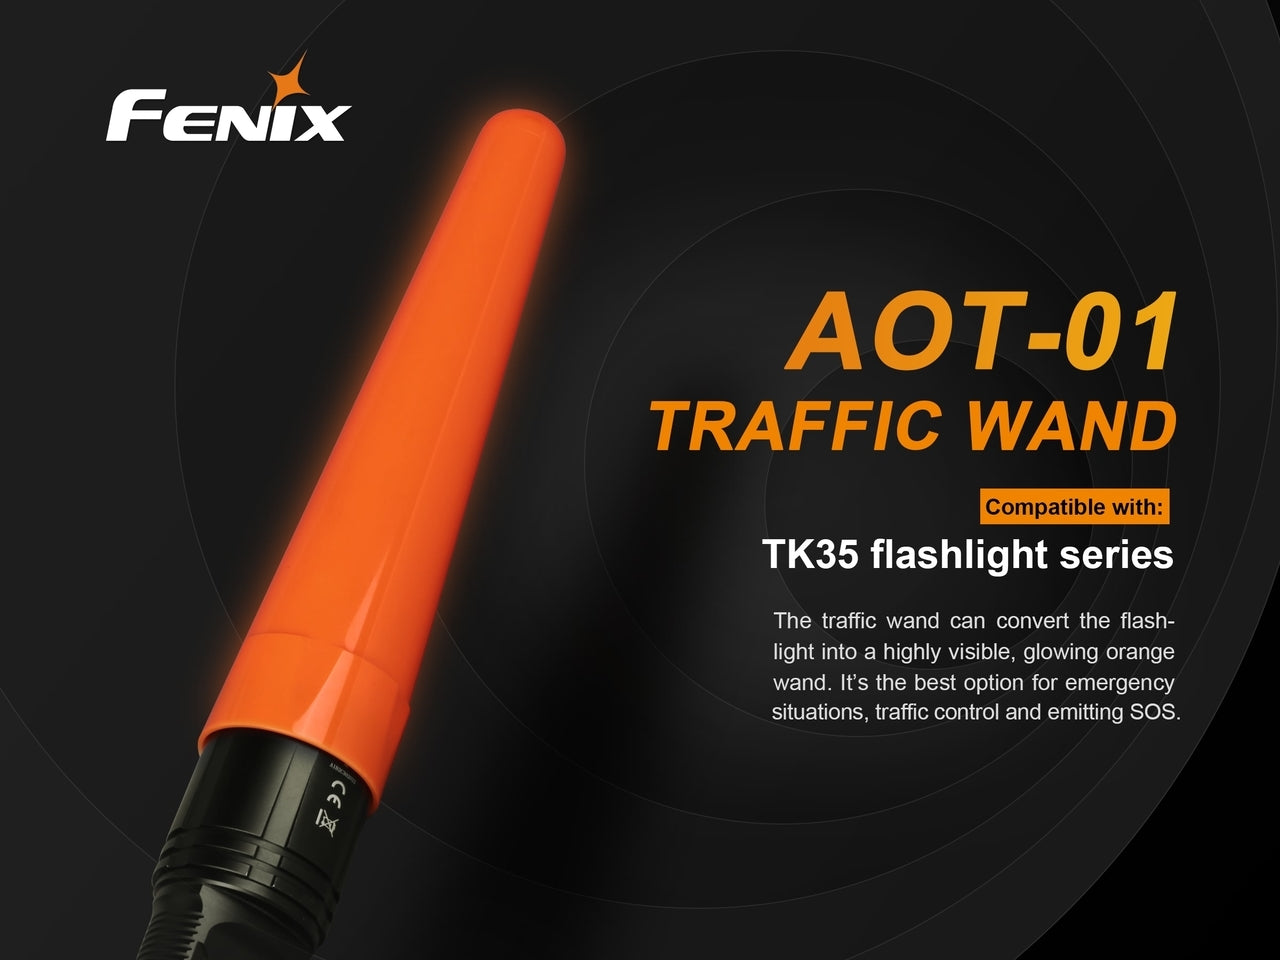 Fenix AOT-01 Traffic Wand, Accessory for Flashlight, Torch used for traffic control